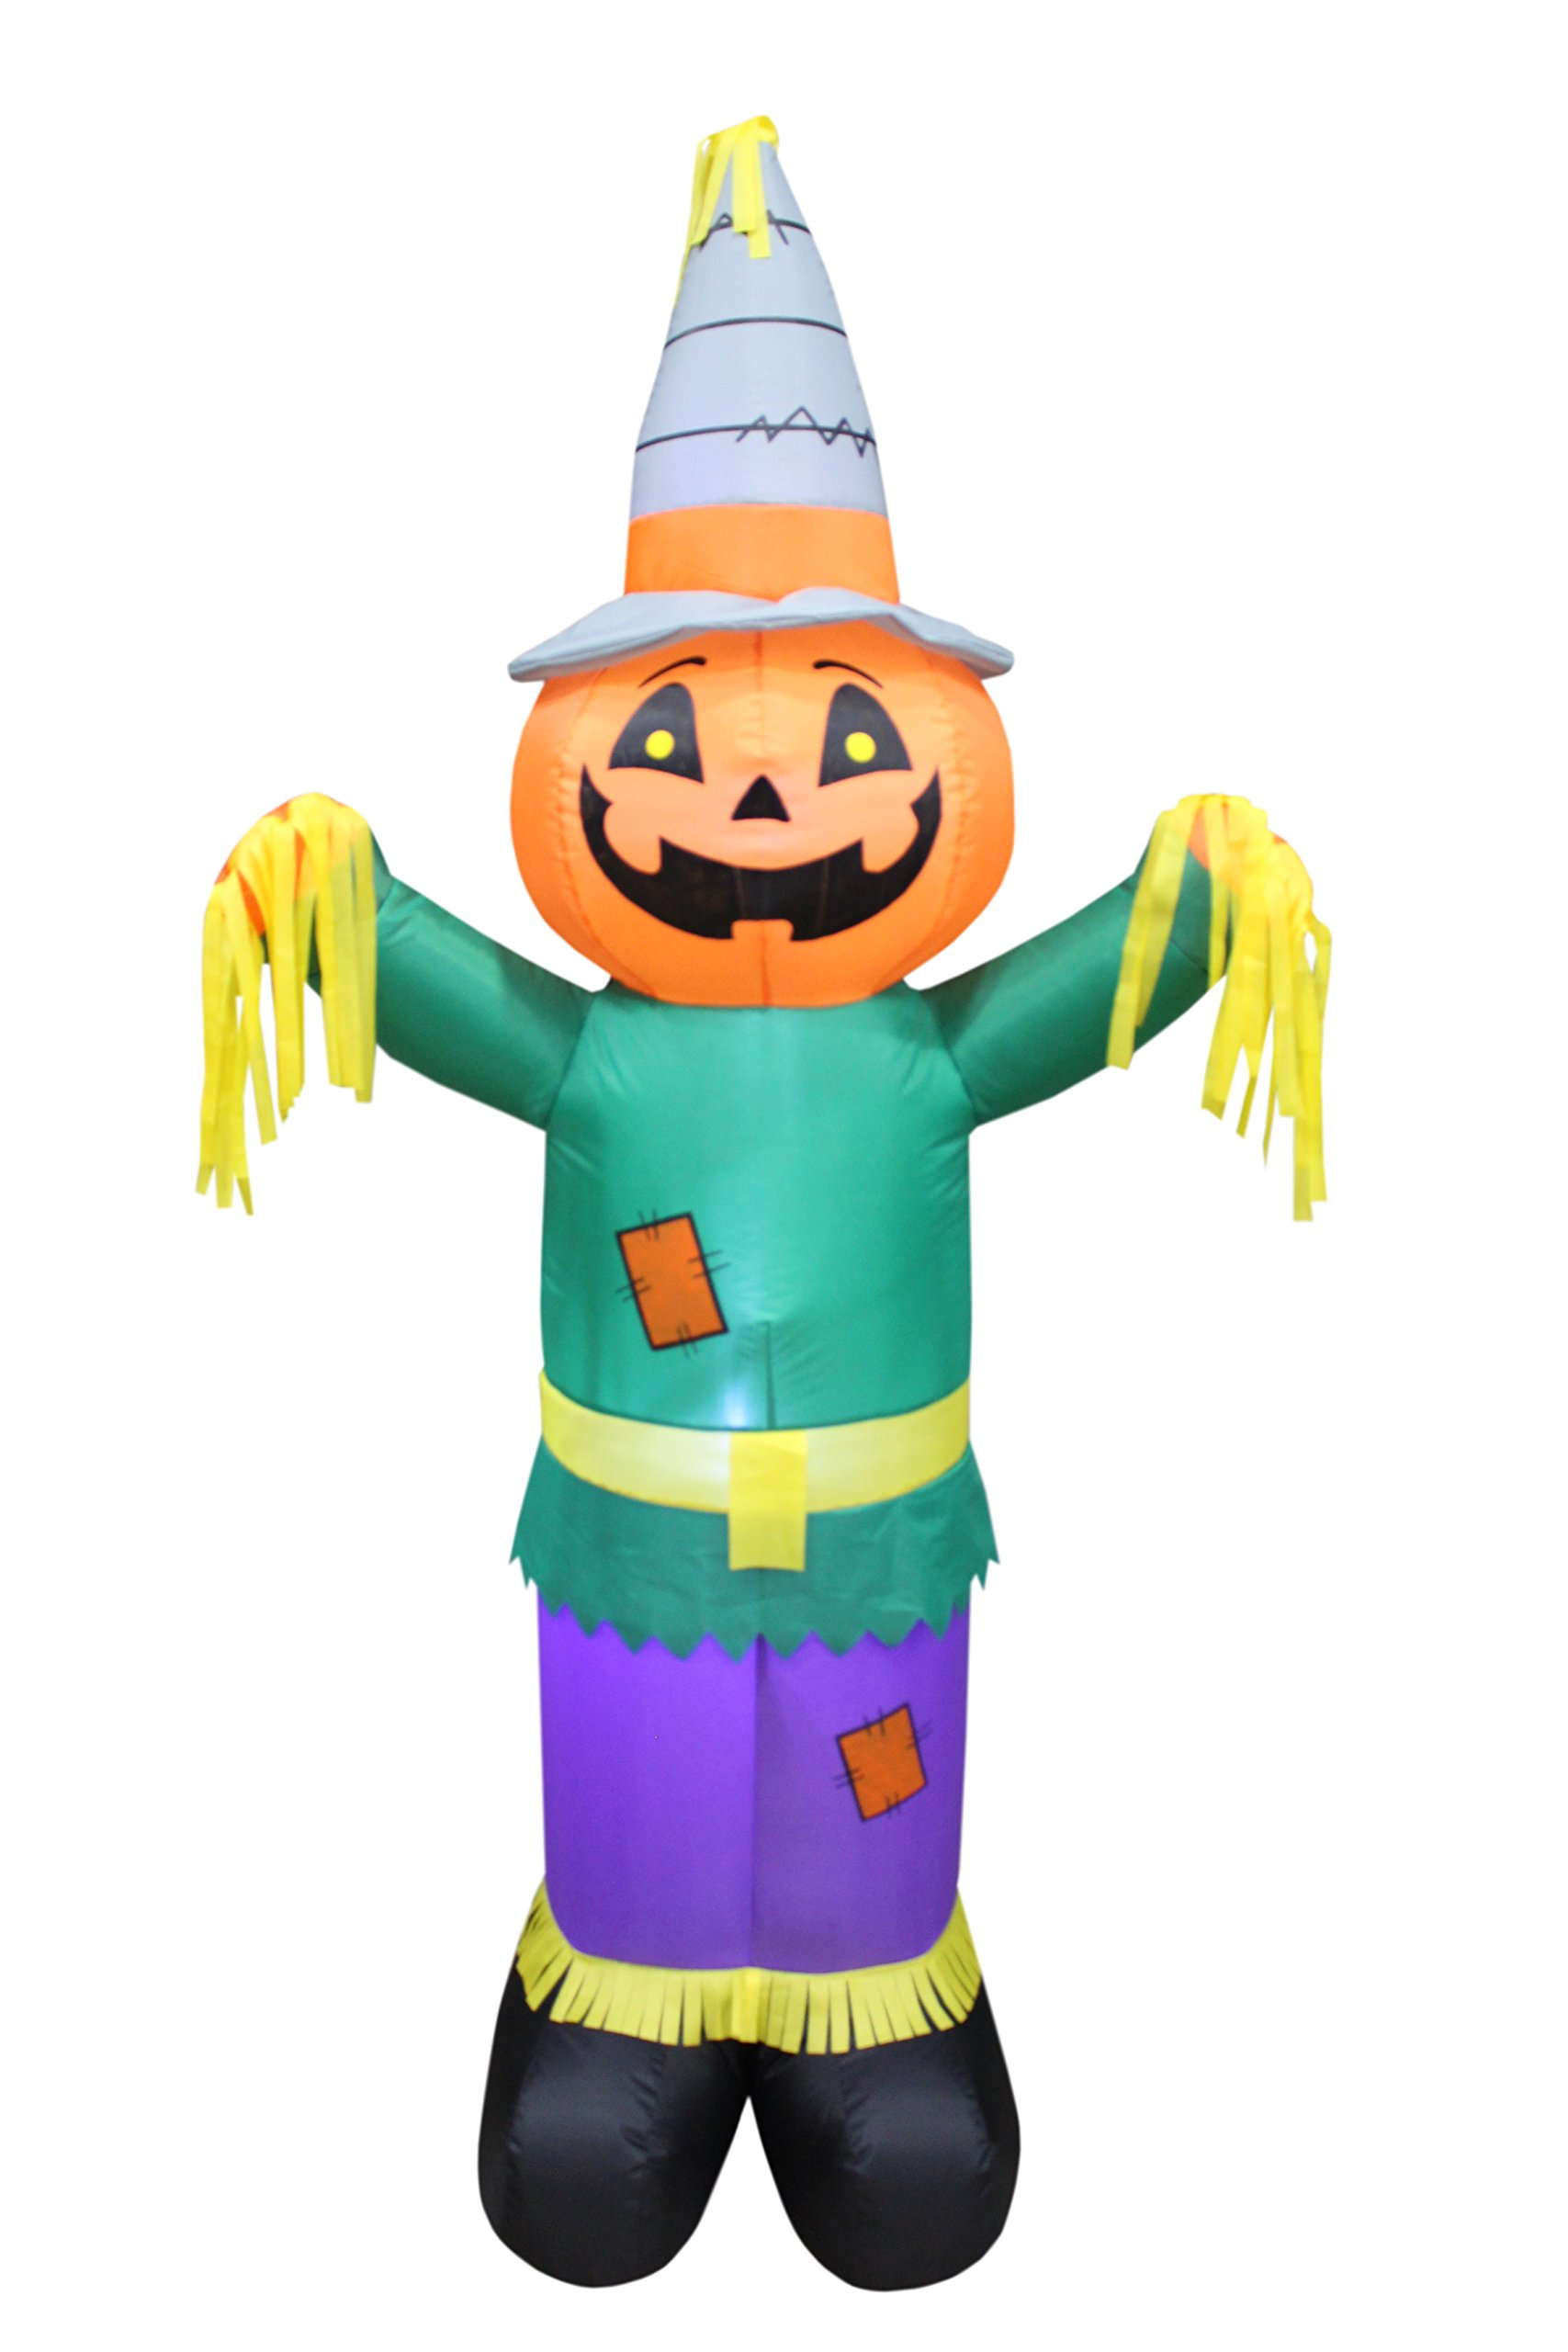 BZB Goods 6 Foot Tall Happy Thanksgiving Halloween Inflatable Pumpkin Scarecrow LED Lights Lighted Blowup Party Decoration for Outdoor Indoor Home Garden Family Prop Yard